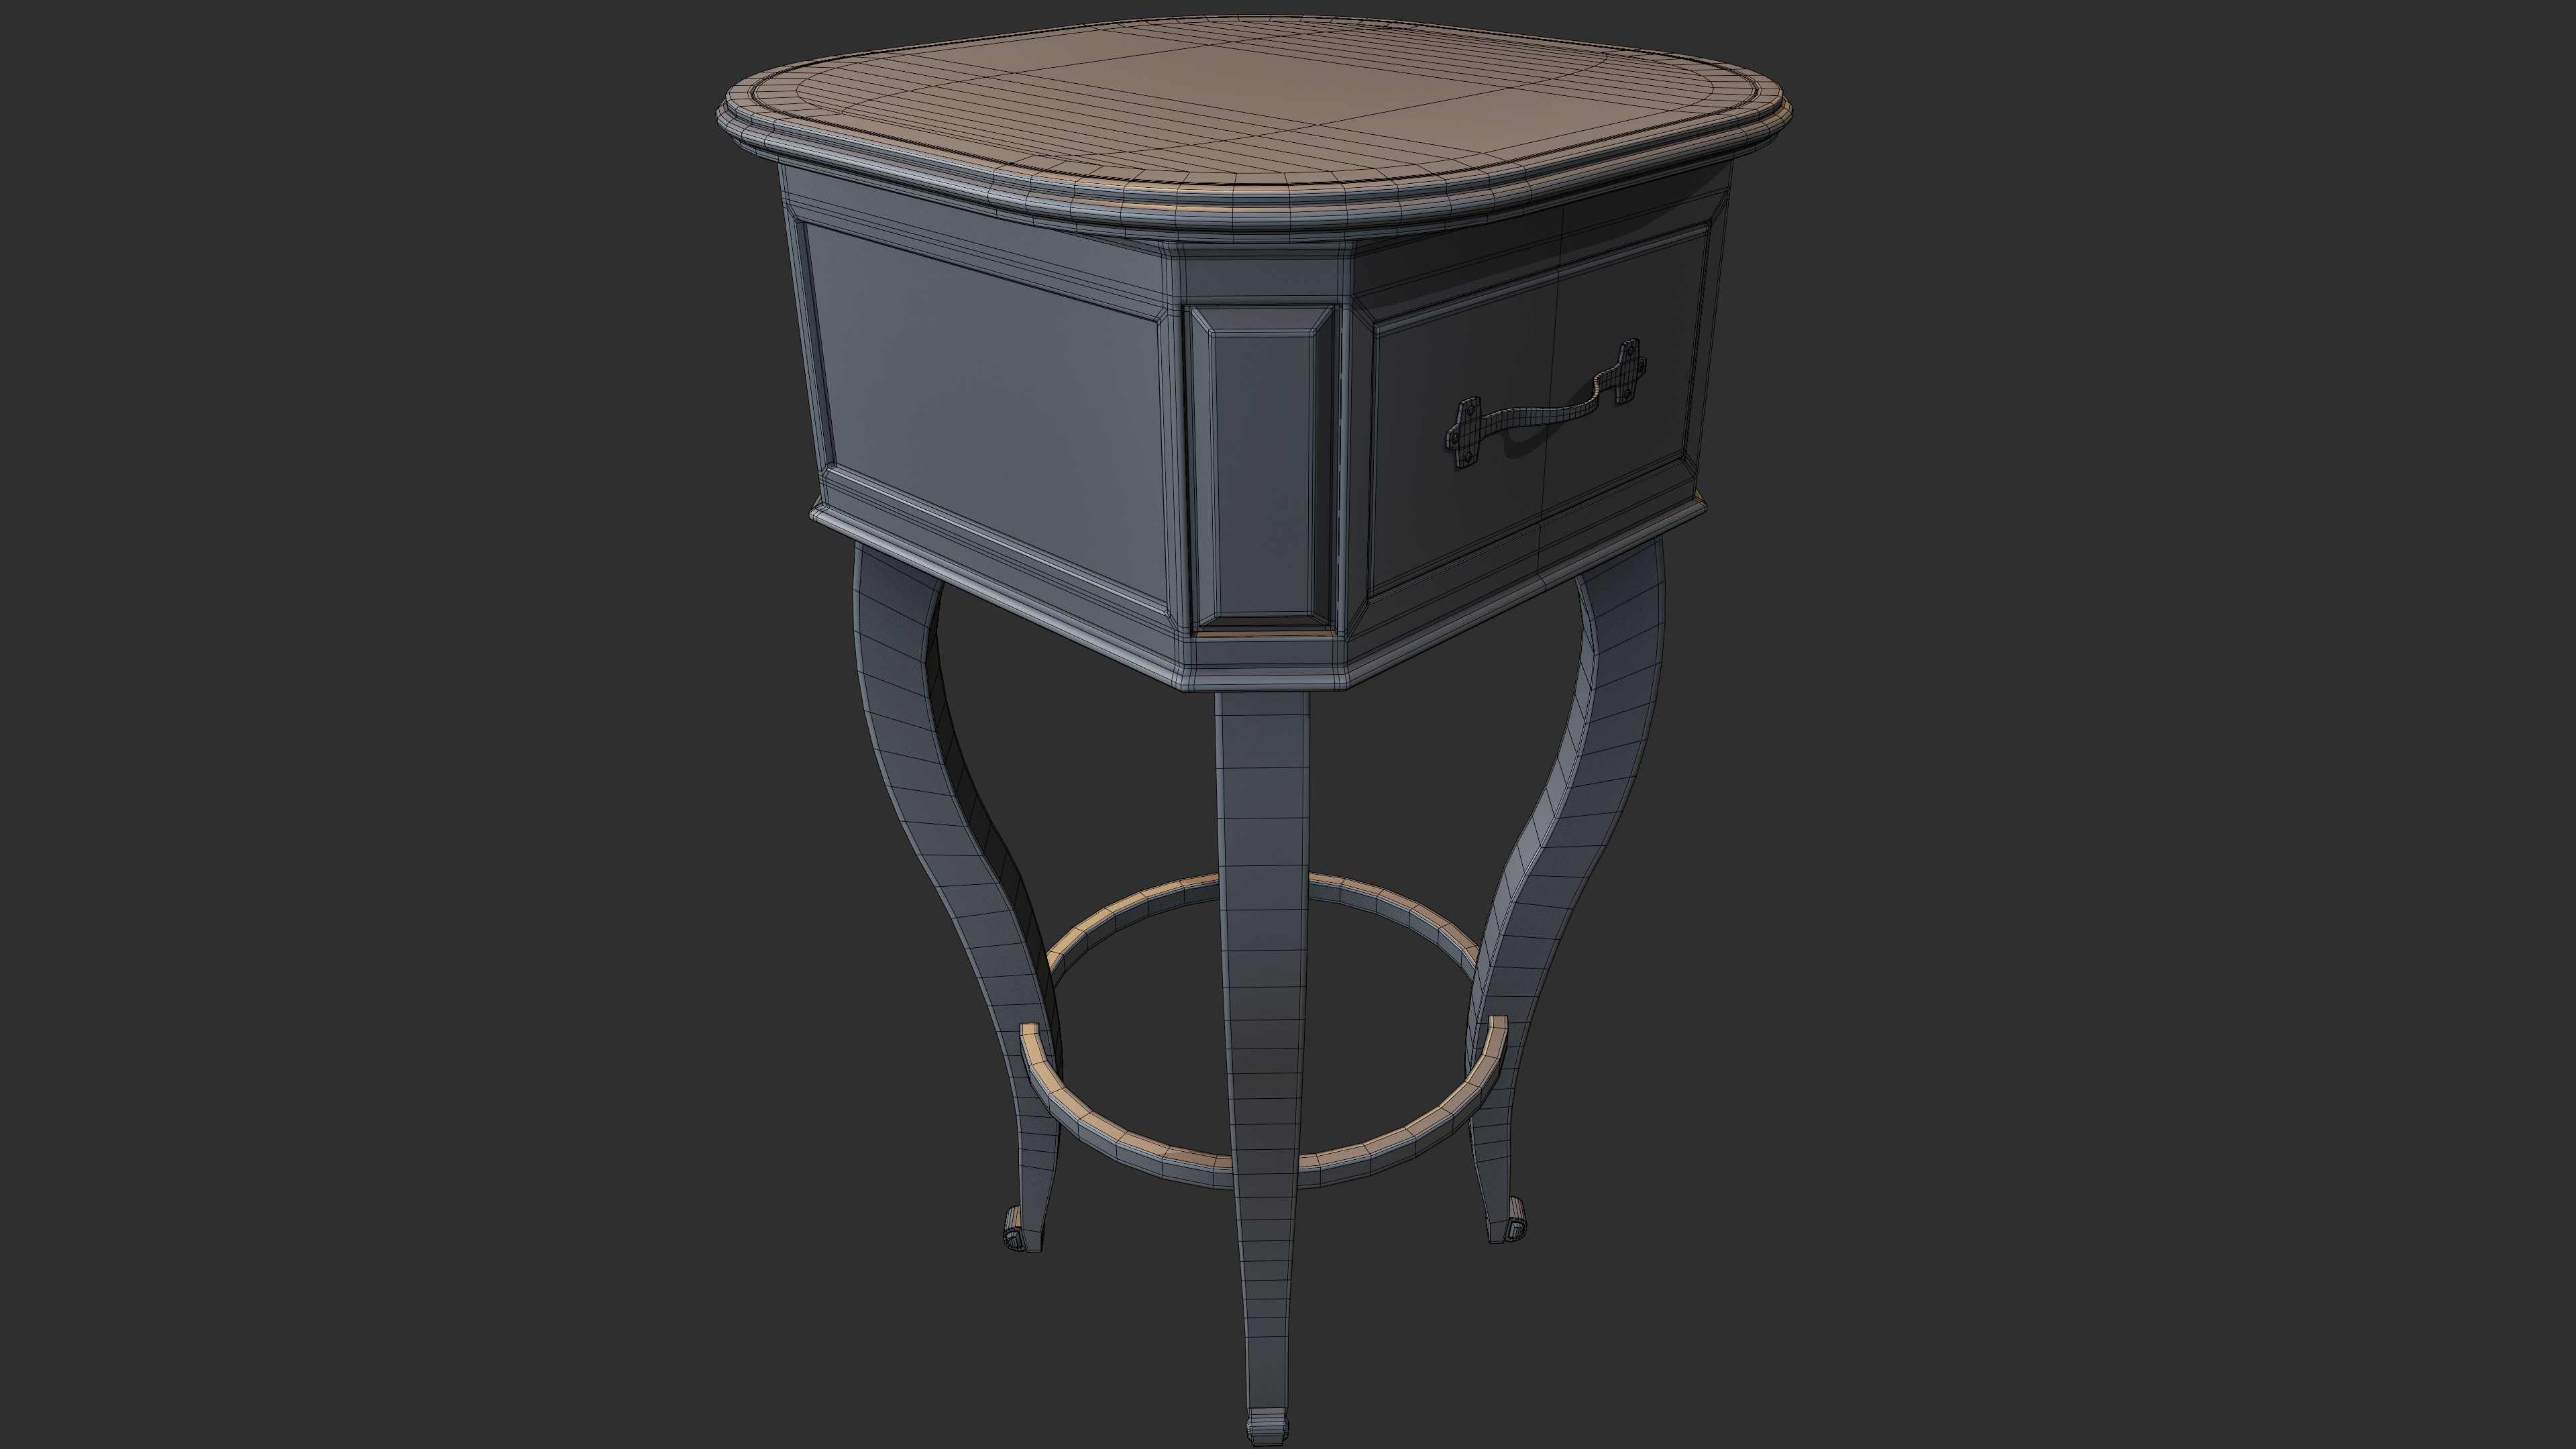 Stewarts Antique French Table preview image 3